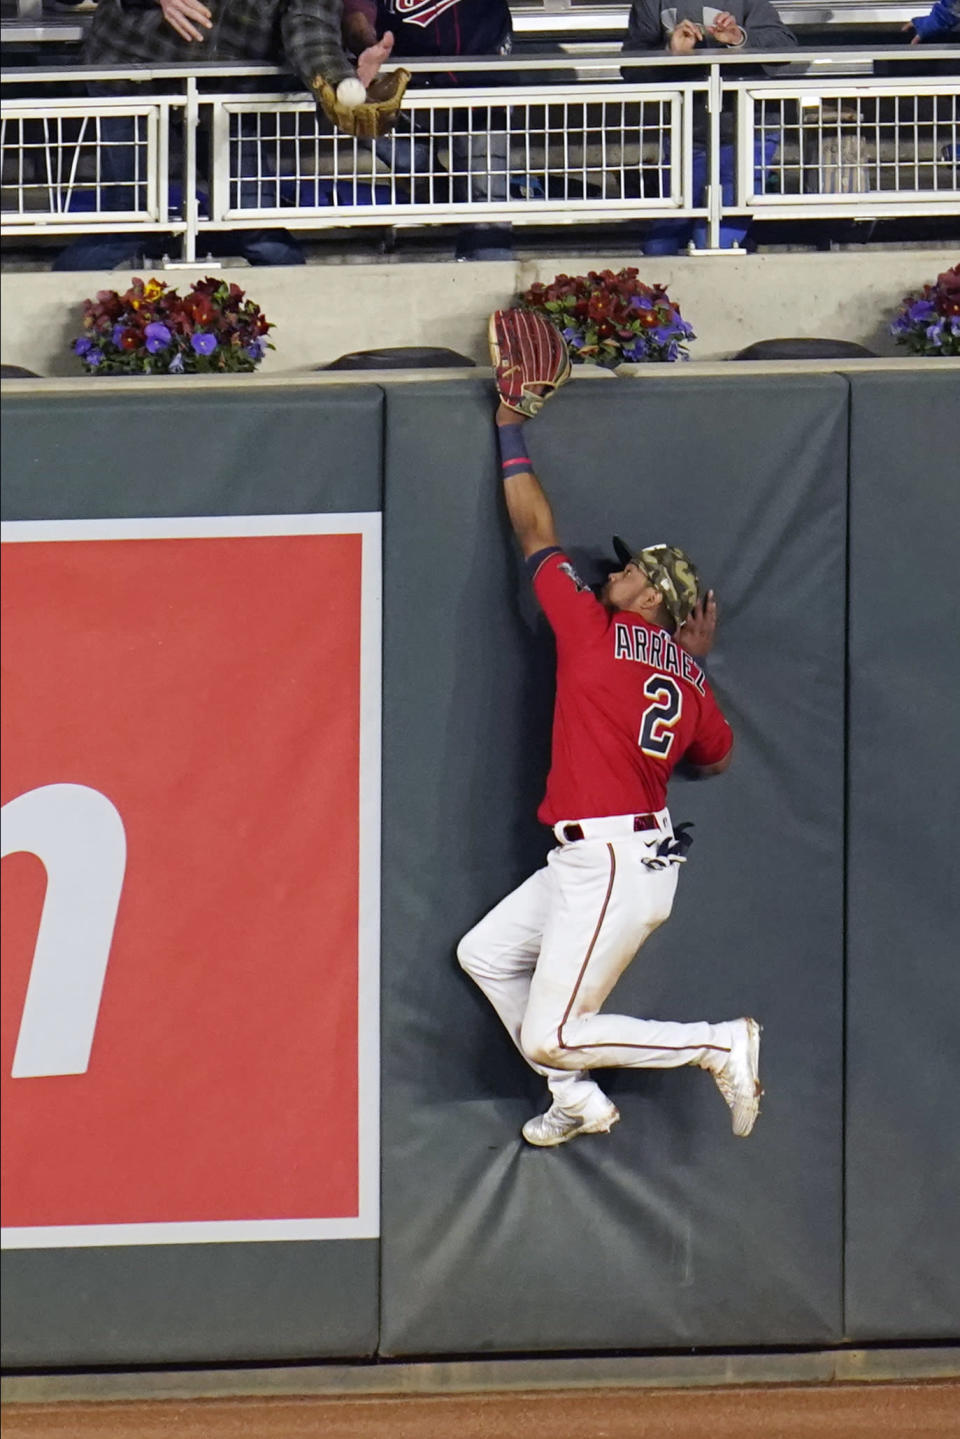 Minnesota Twins left fielder Luis Arraez cannot reach a fly ball off the bat of Oakland Athletics' Mark Canha for a solo home run in the eighth inning of a baseball game, Friday, May 14, 2021, in Minneapolis. (AP Photo/Jim Mone)